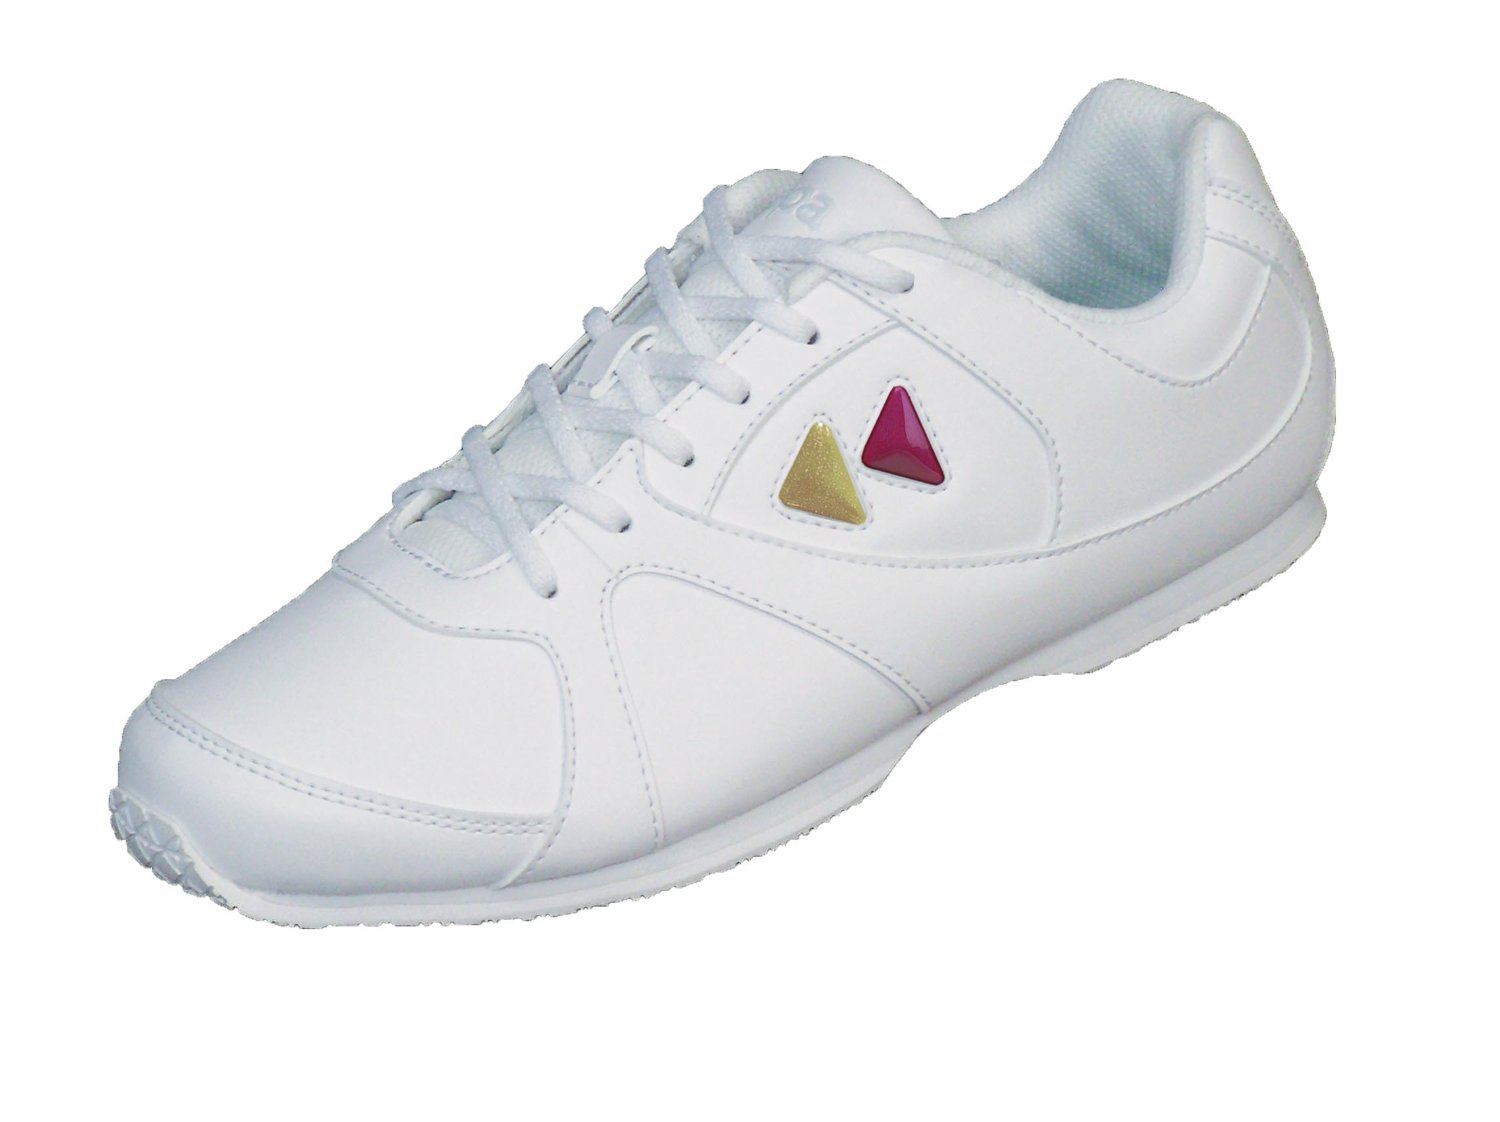 Kaepa Women's Cheerful Cheer Shoe with Color Change Snap in Logo, White, Size 9